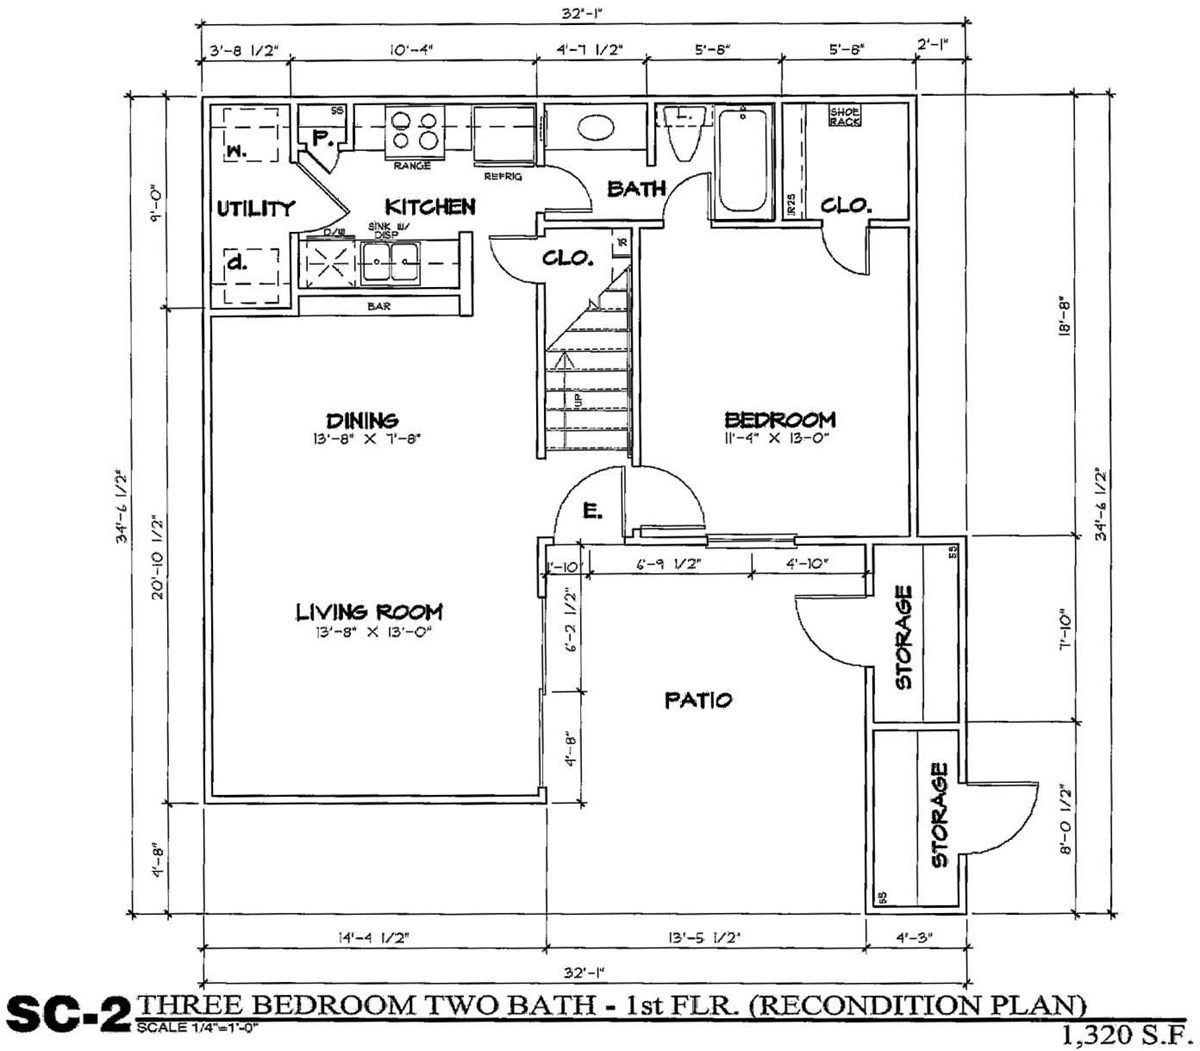 1,320 sq. ft. SC2/50% floor plan